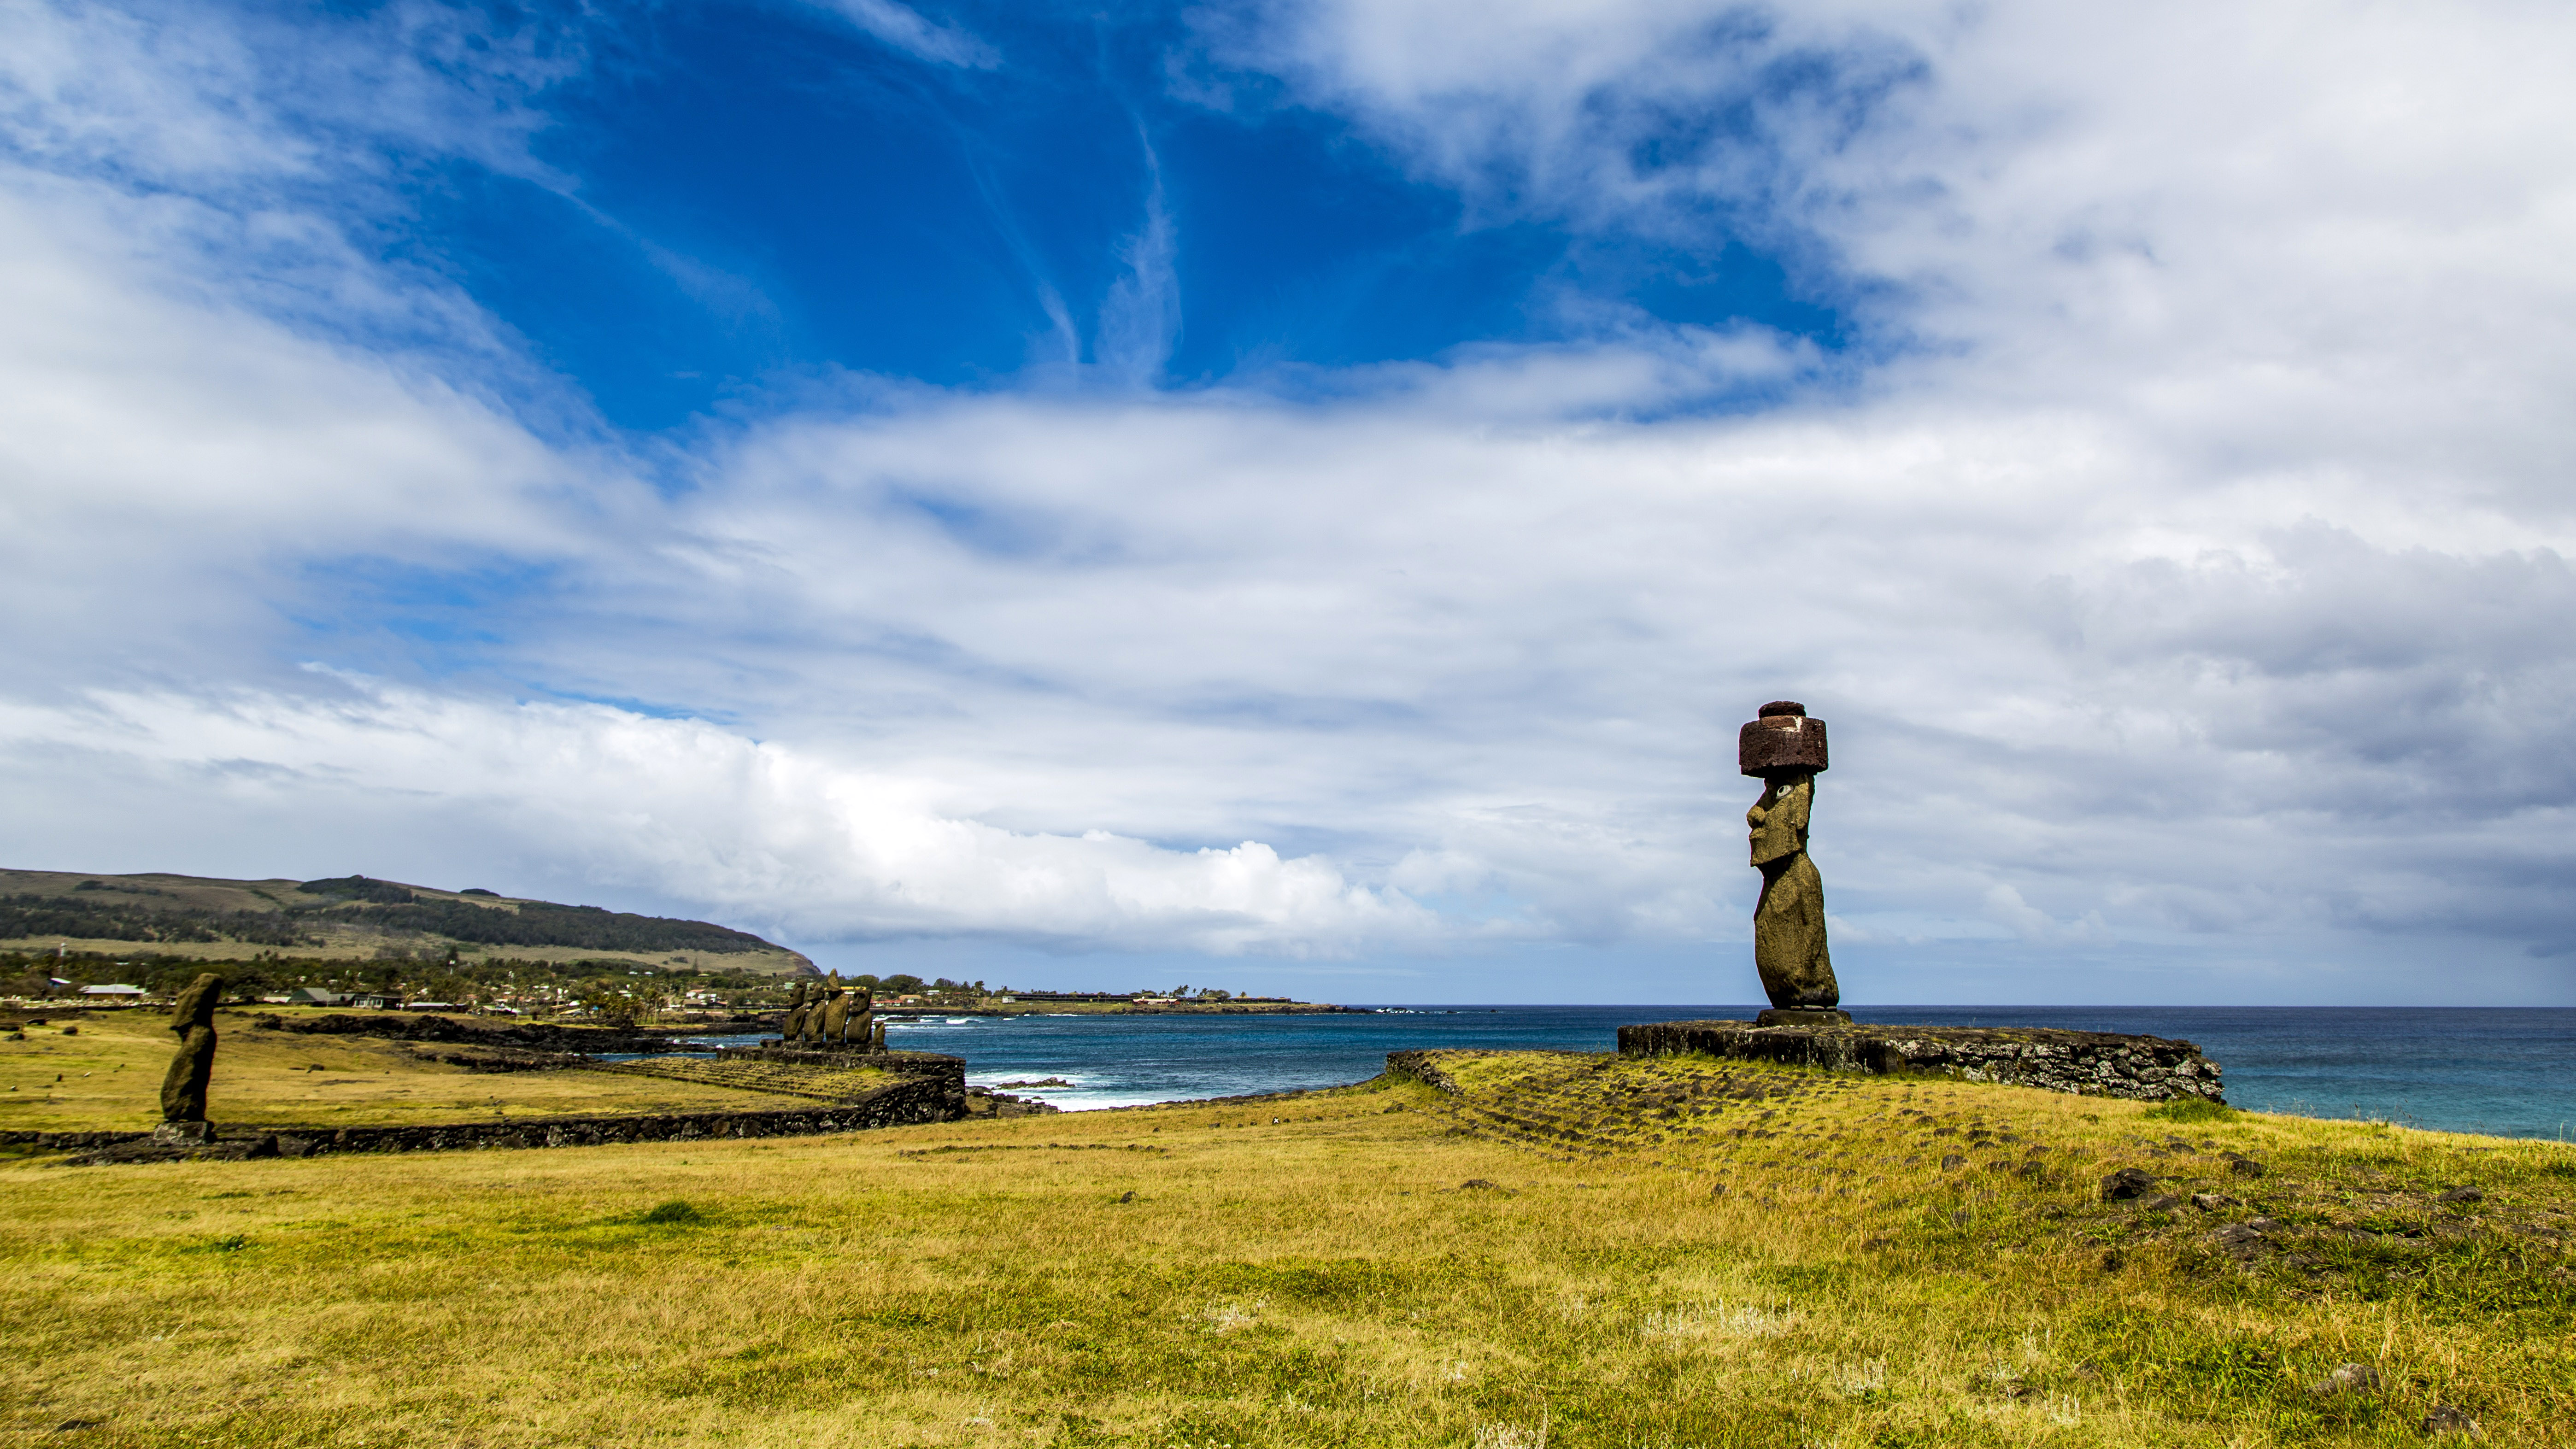 landscape of easter island with sky and statue in chile image free